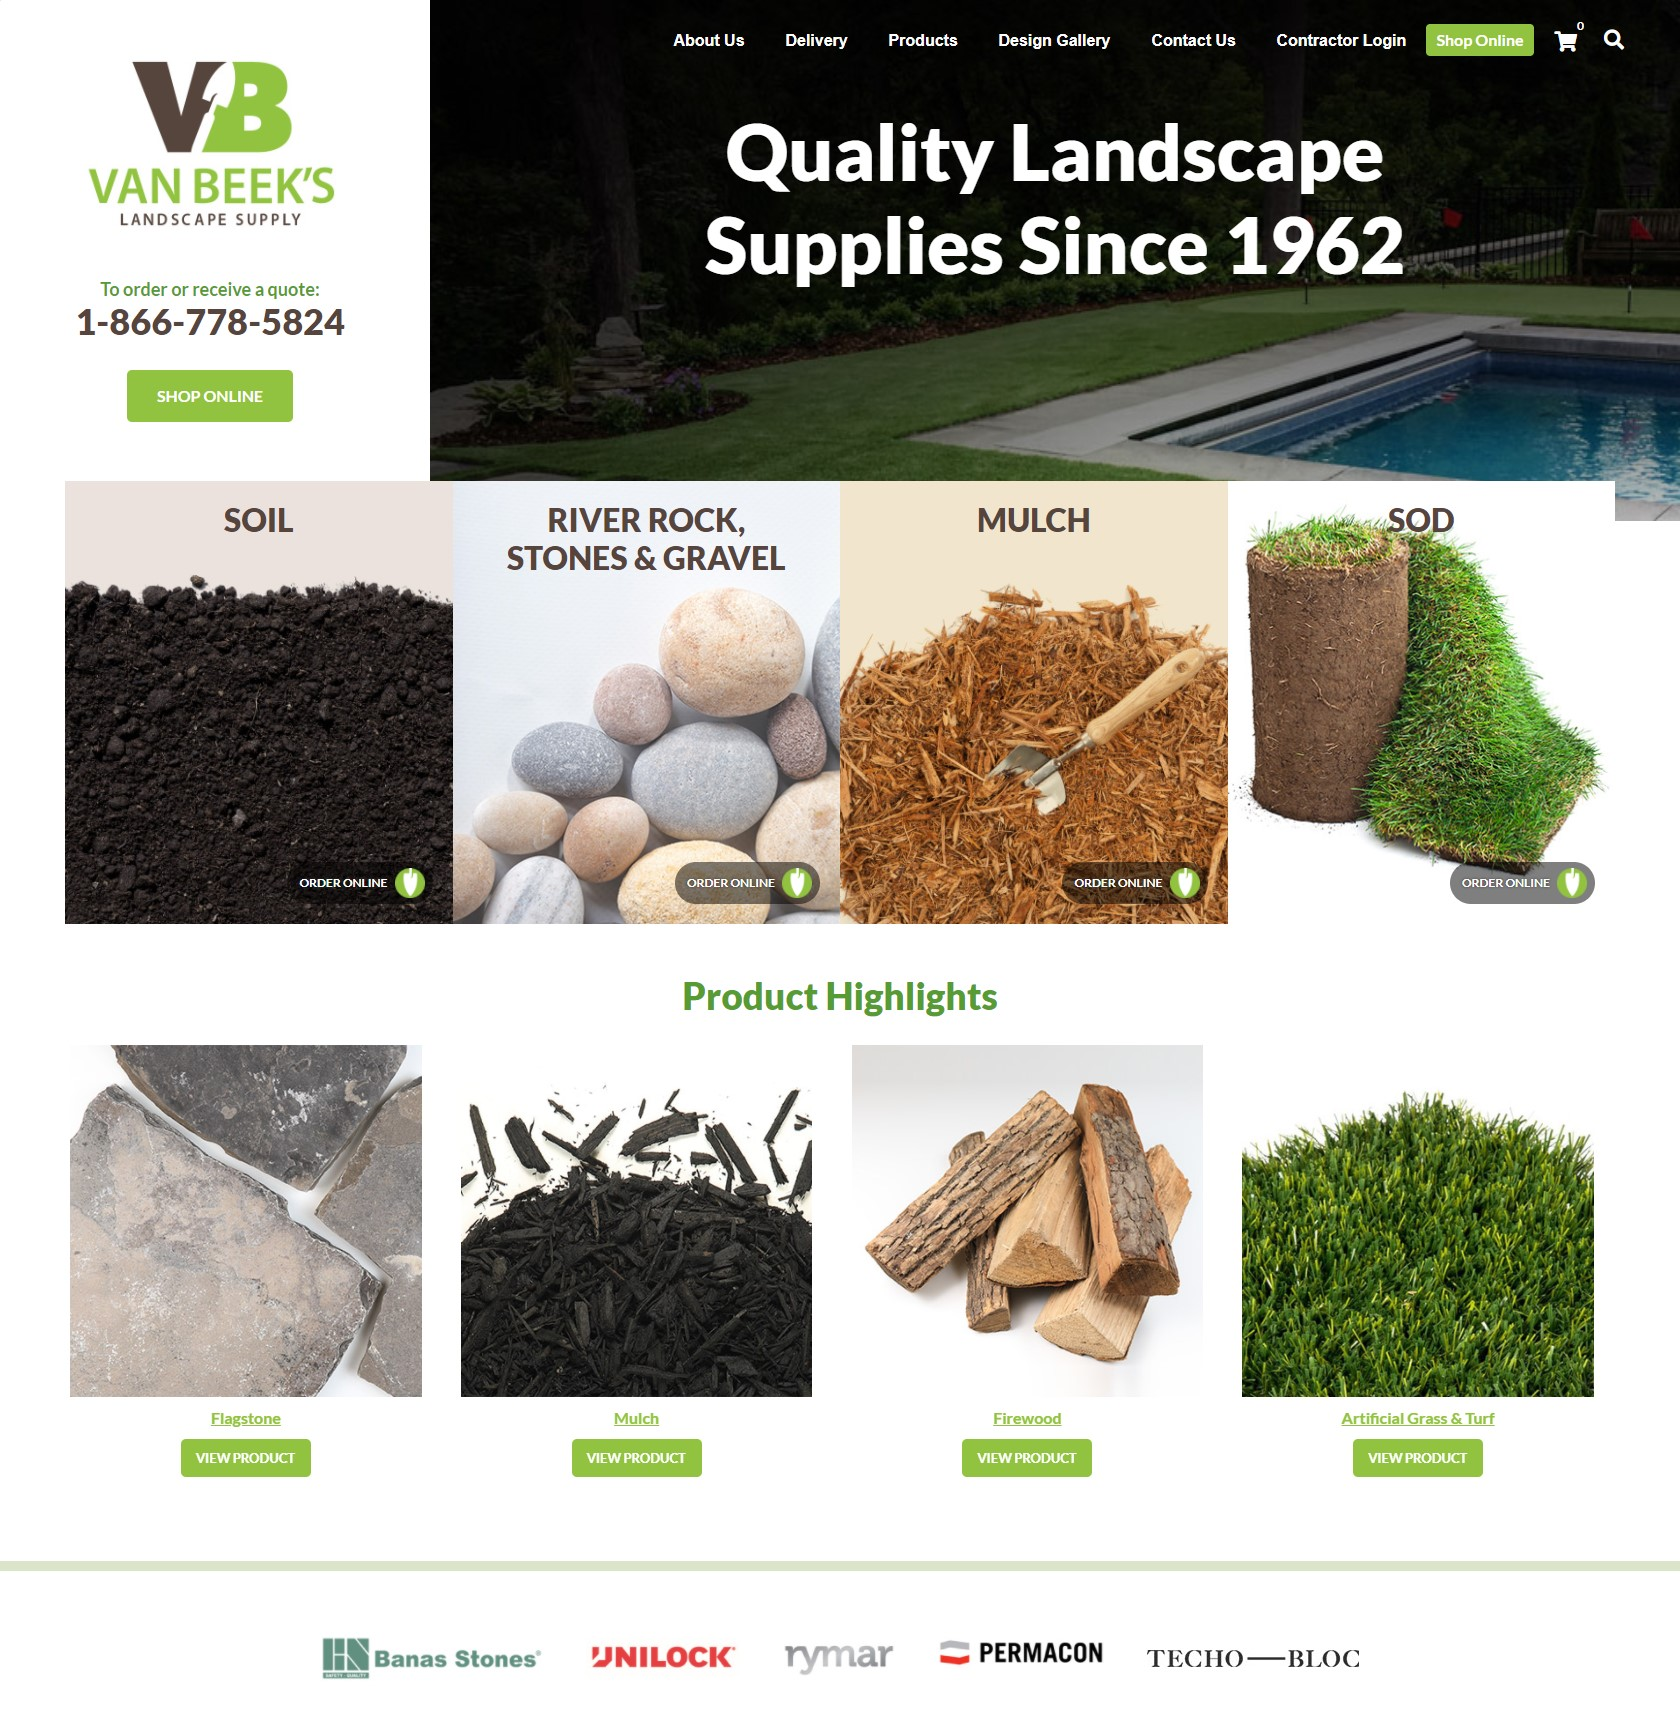 Van Beek's Landscaping Supply